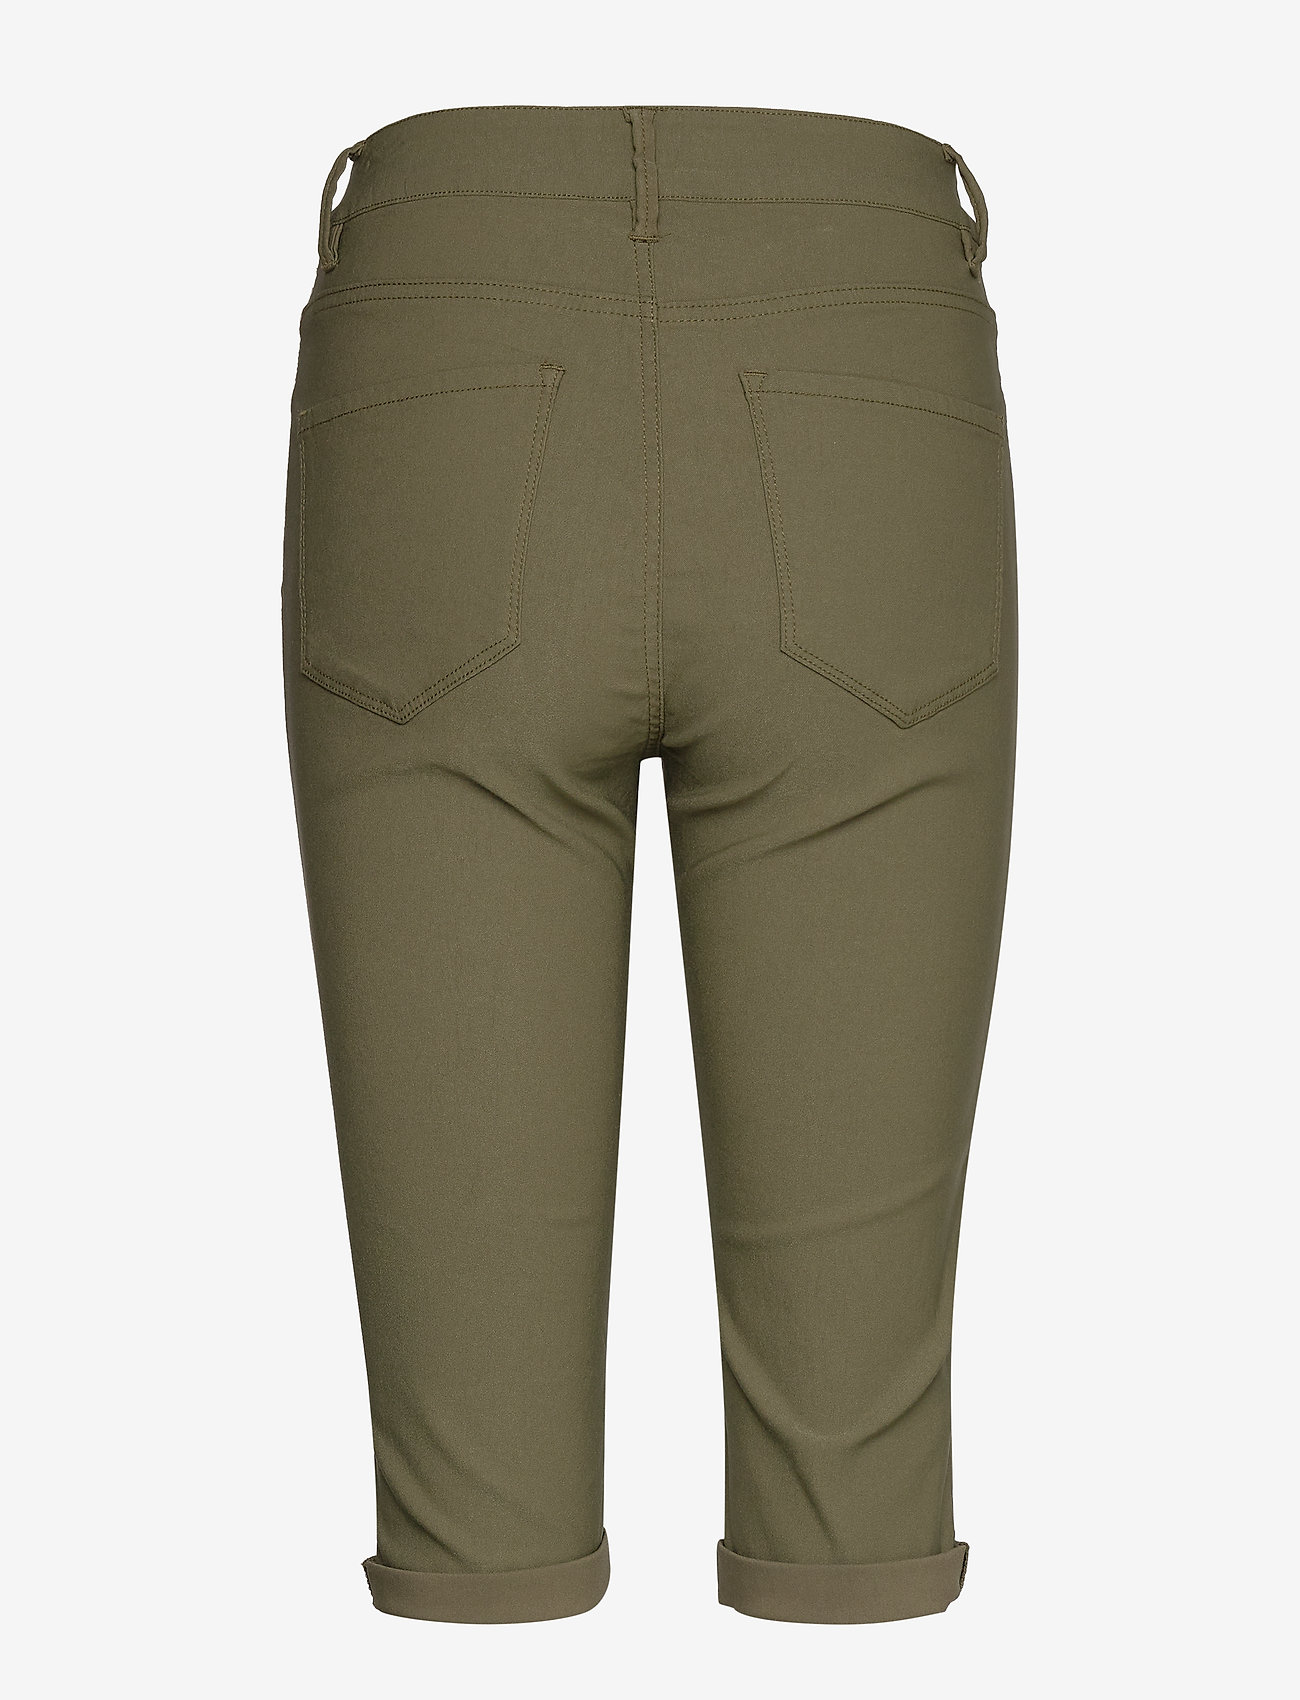 Free/quent Amie-sho-power - Shorts Burnt Olive 18-0521 Tcx